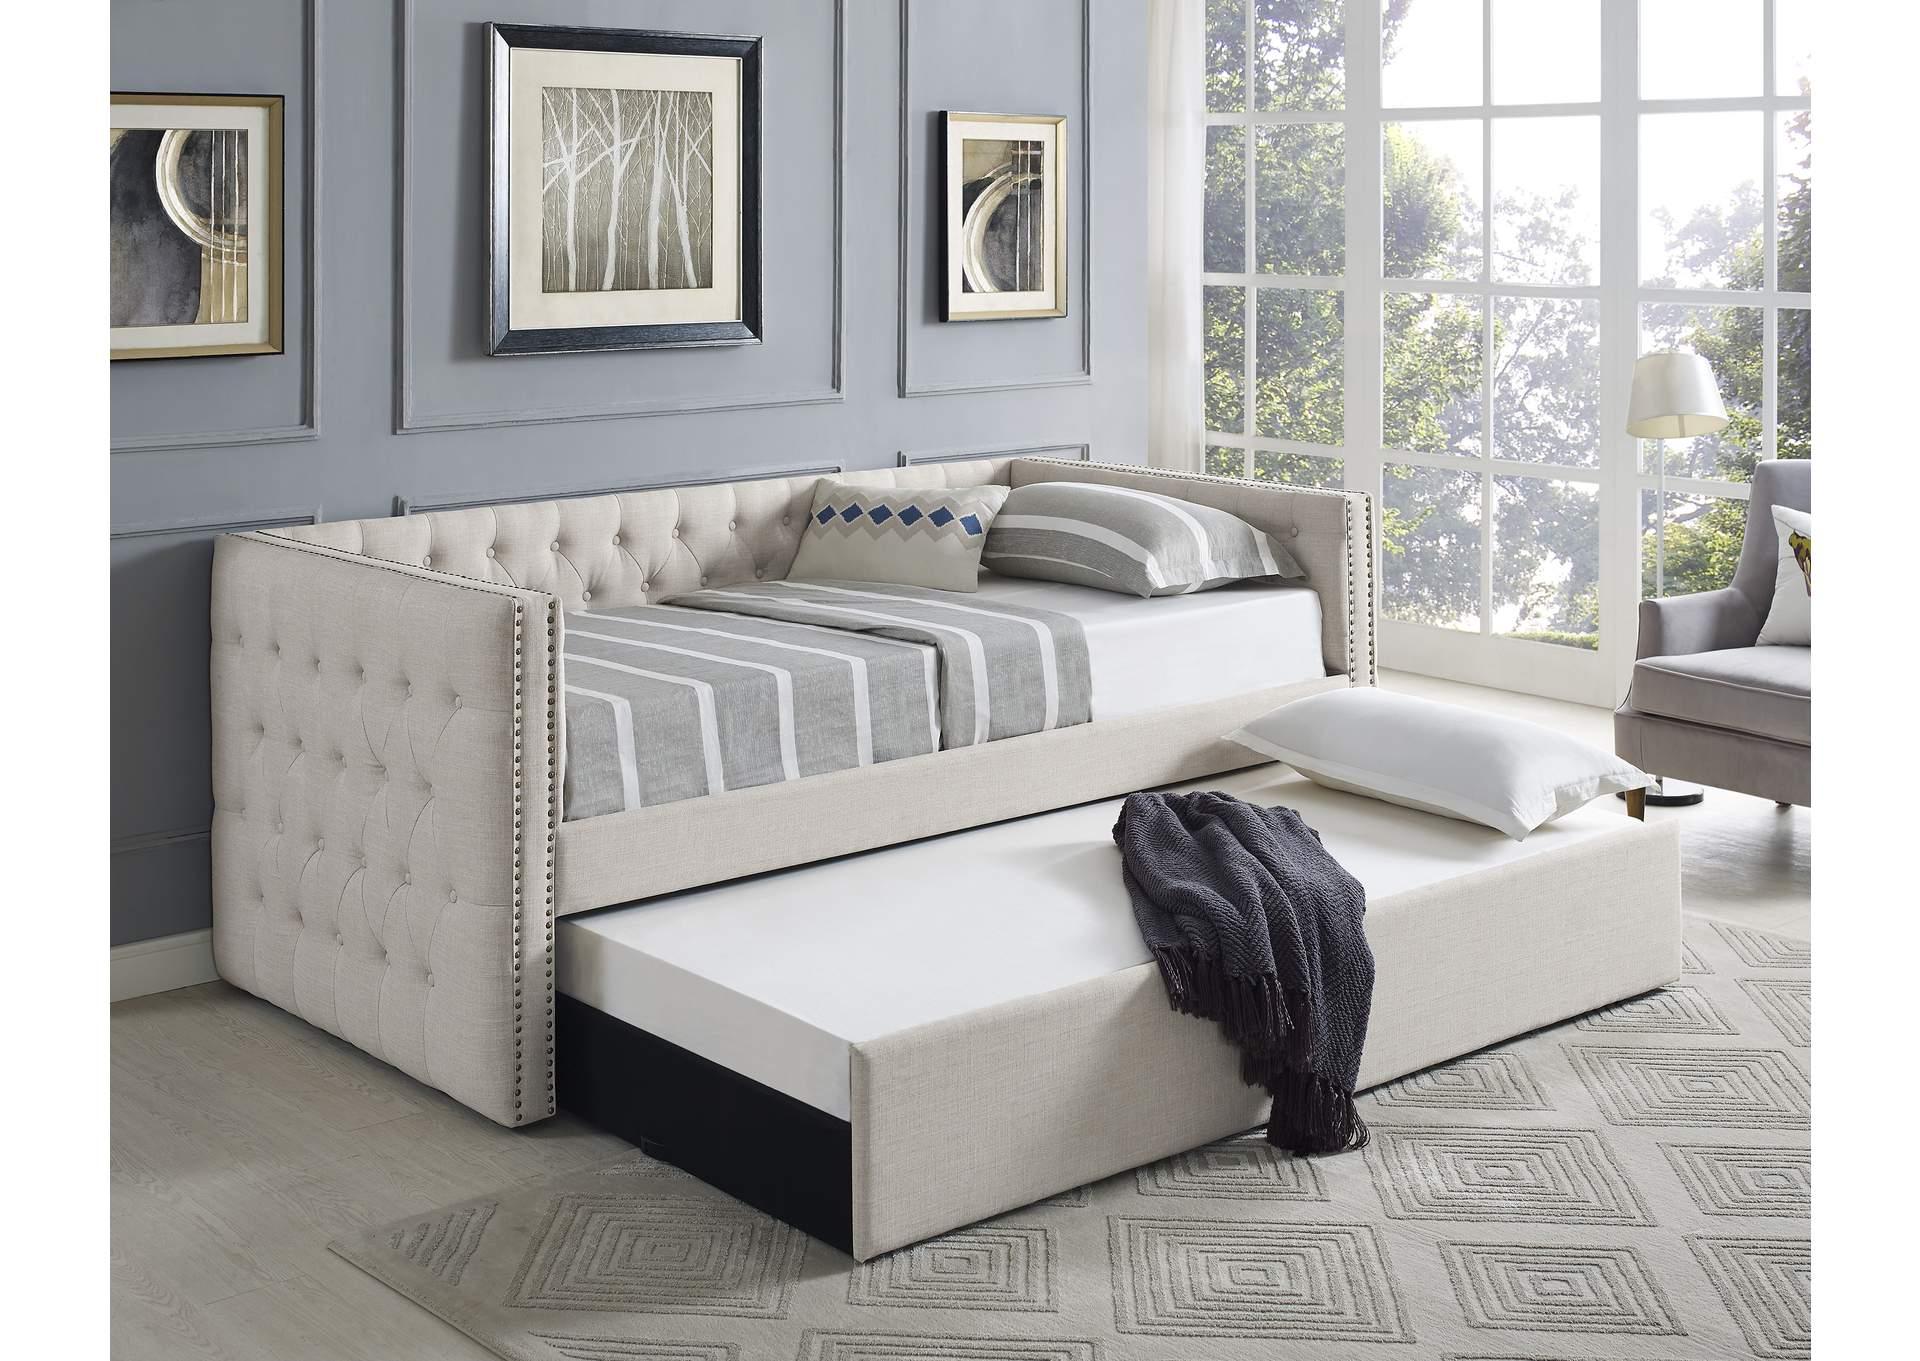 Trina Ivory Upholstered Daybed,Crown Mark